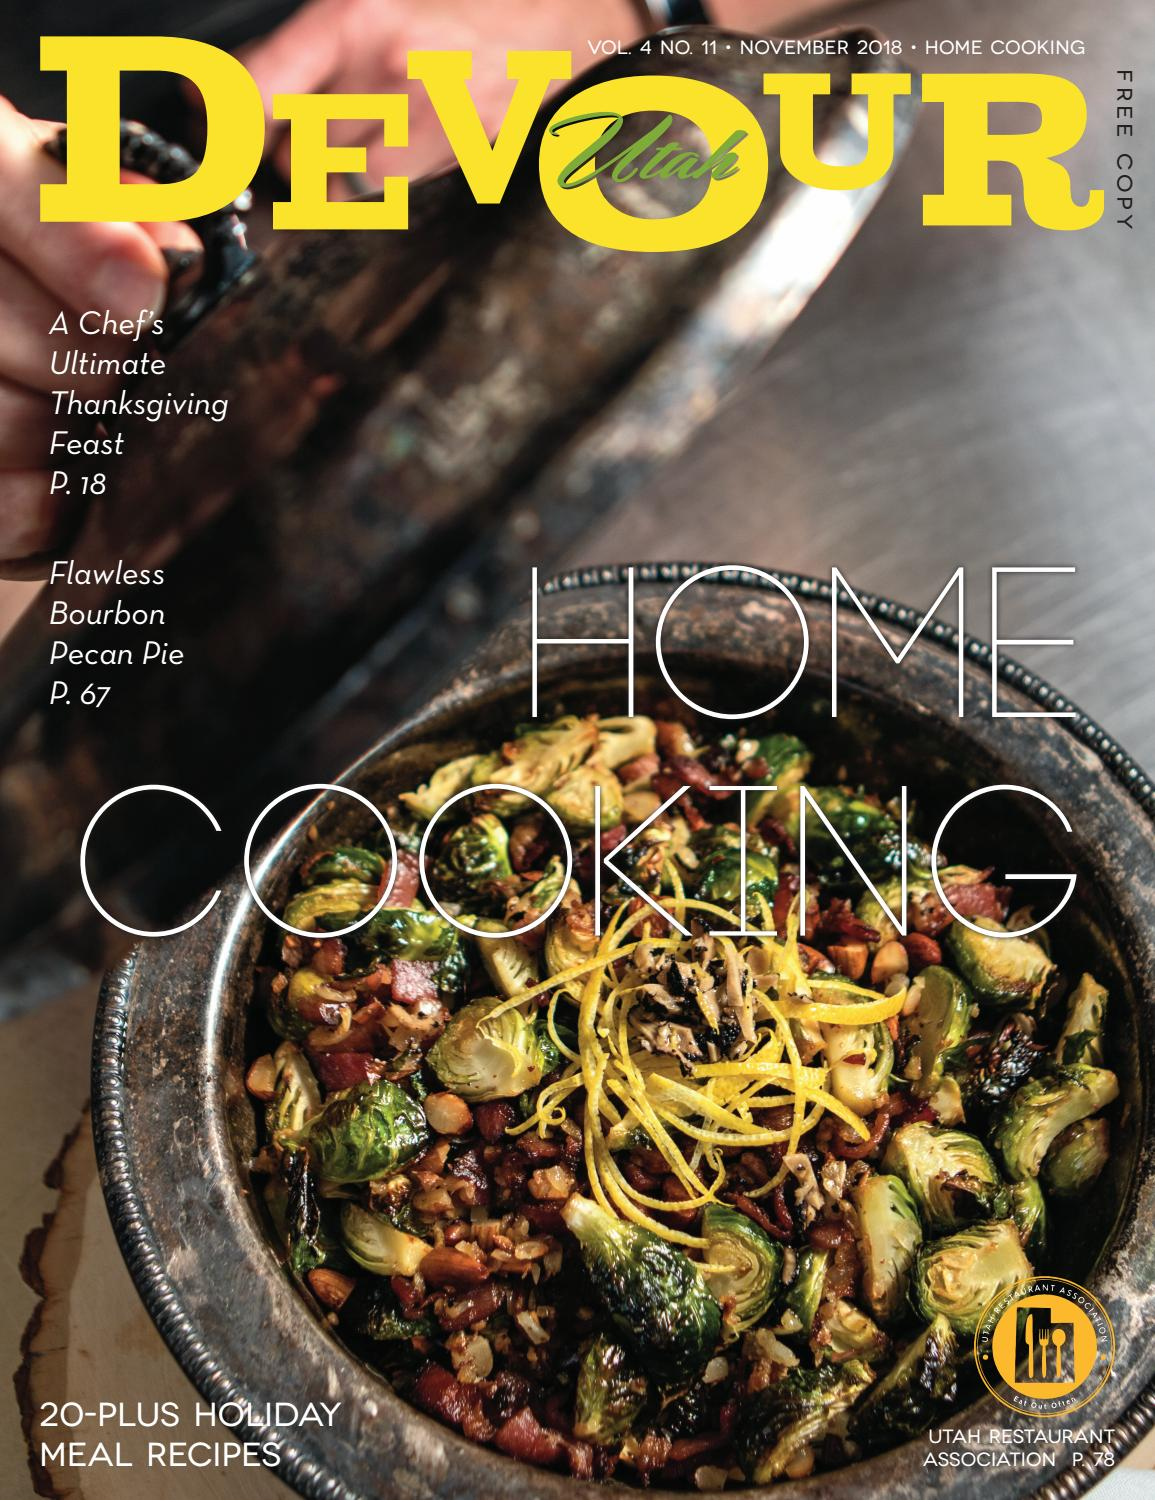 Cookin Aint That Hard:A simple look at some complex recipes to put the fun back into cooking......